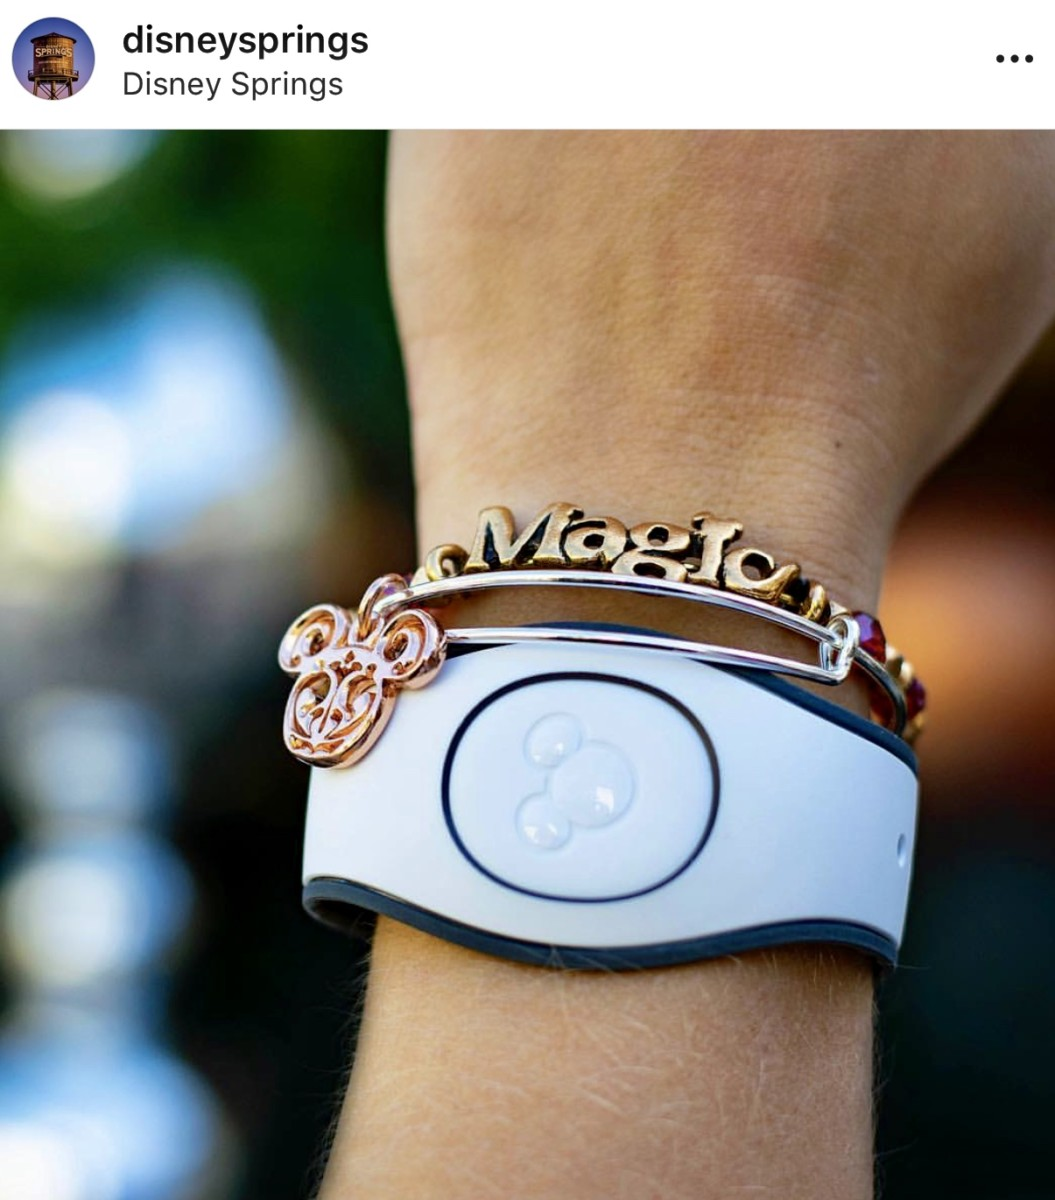 New MagicBand Colors Available at Disney Springs 5